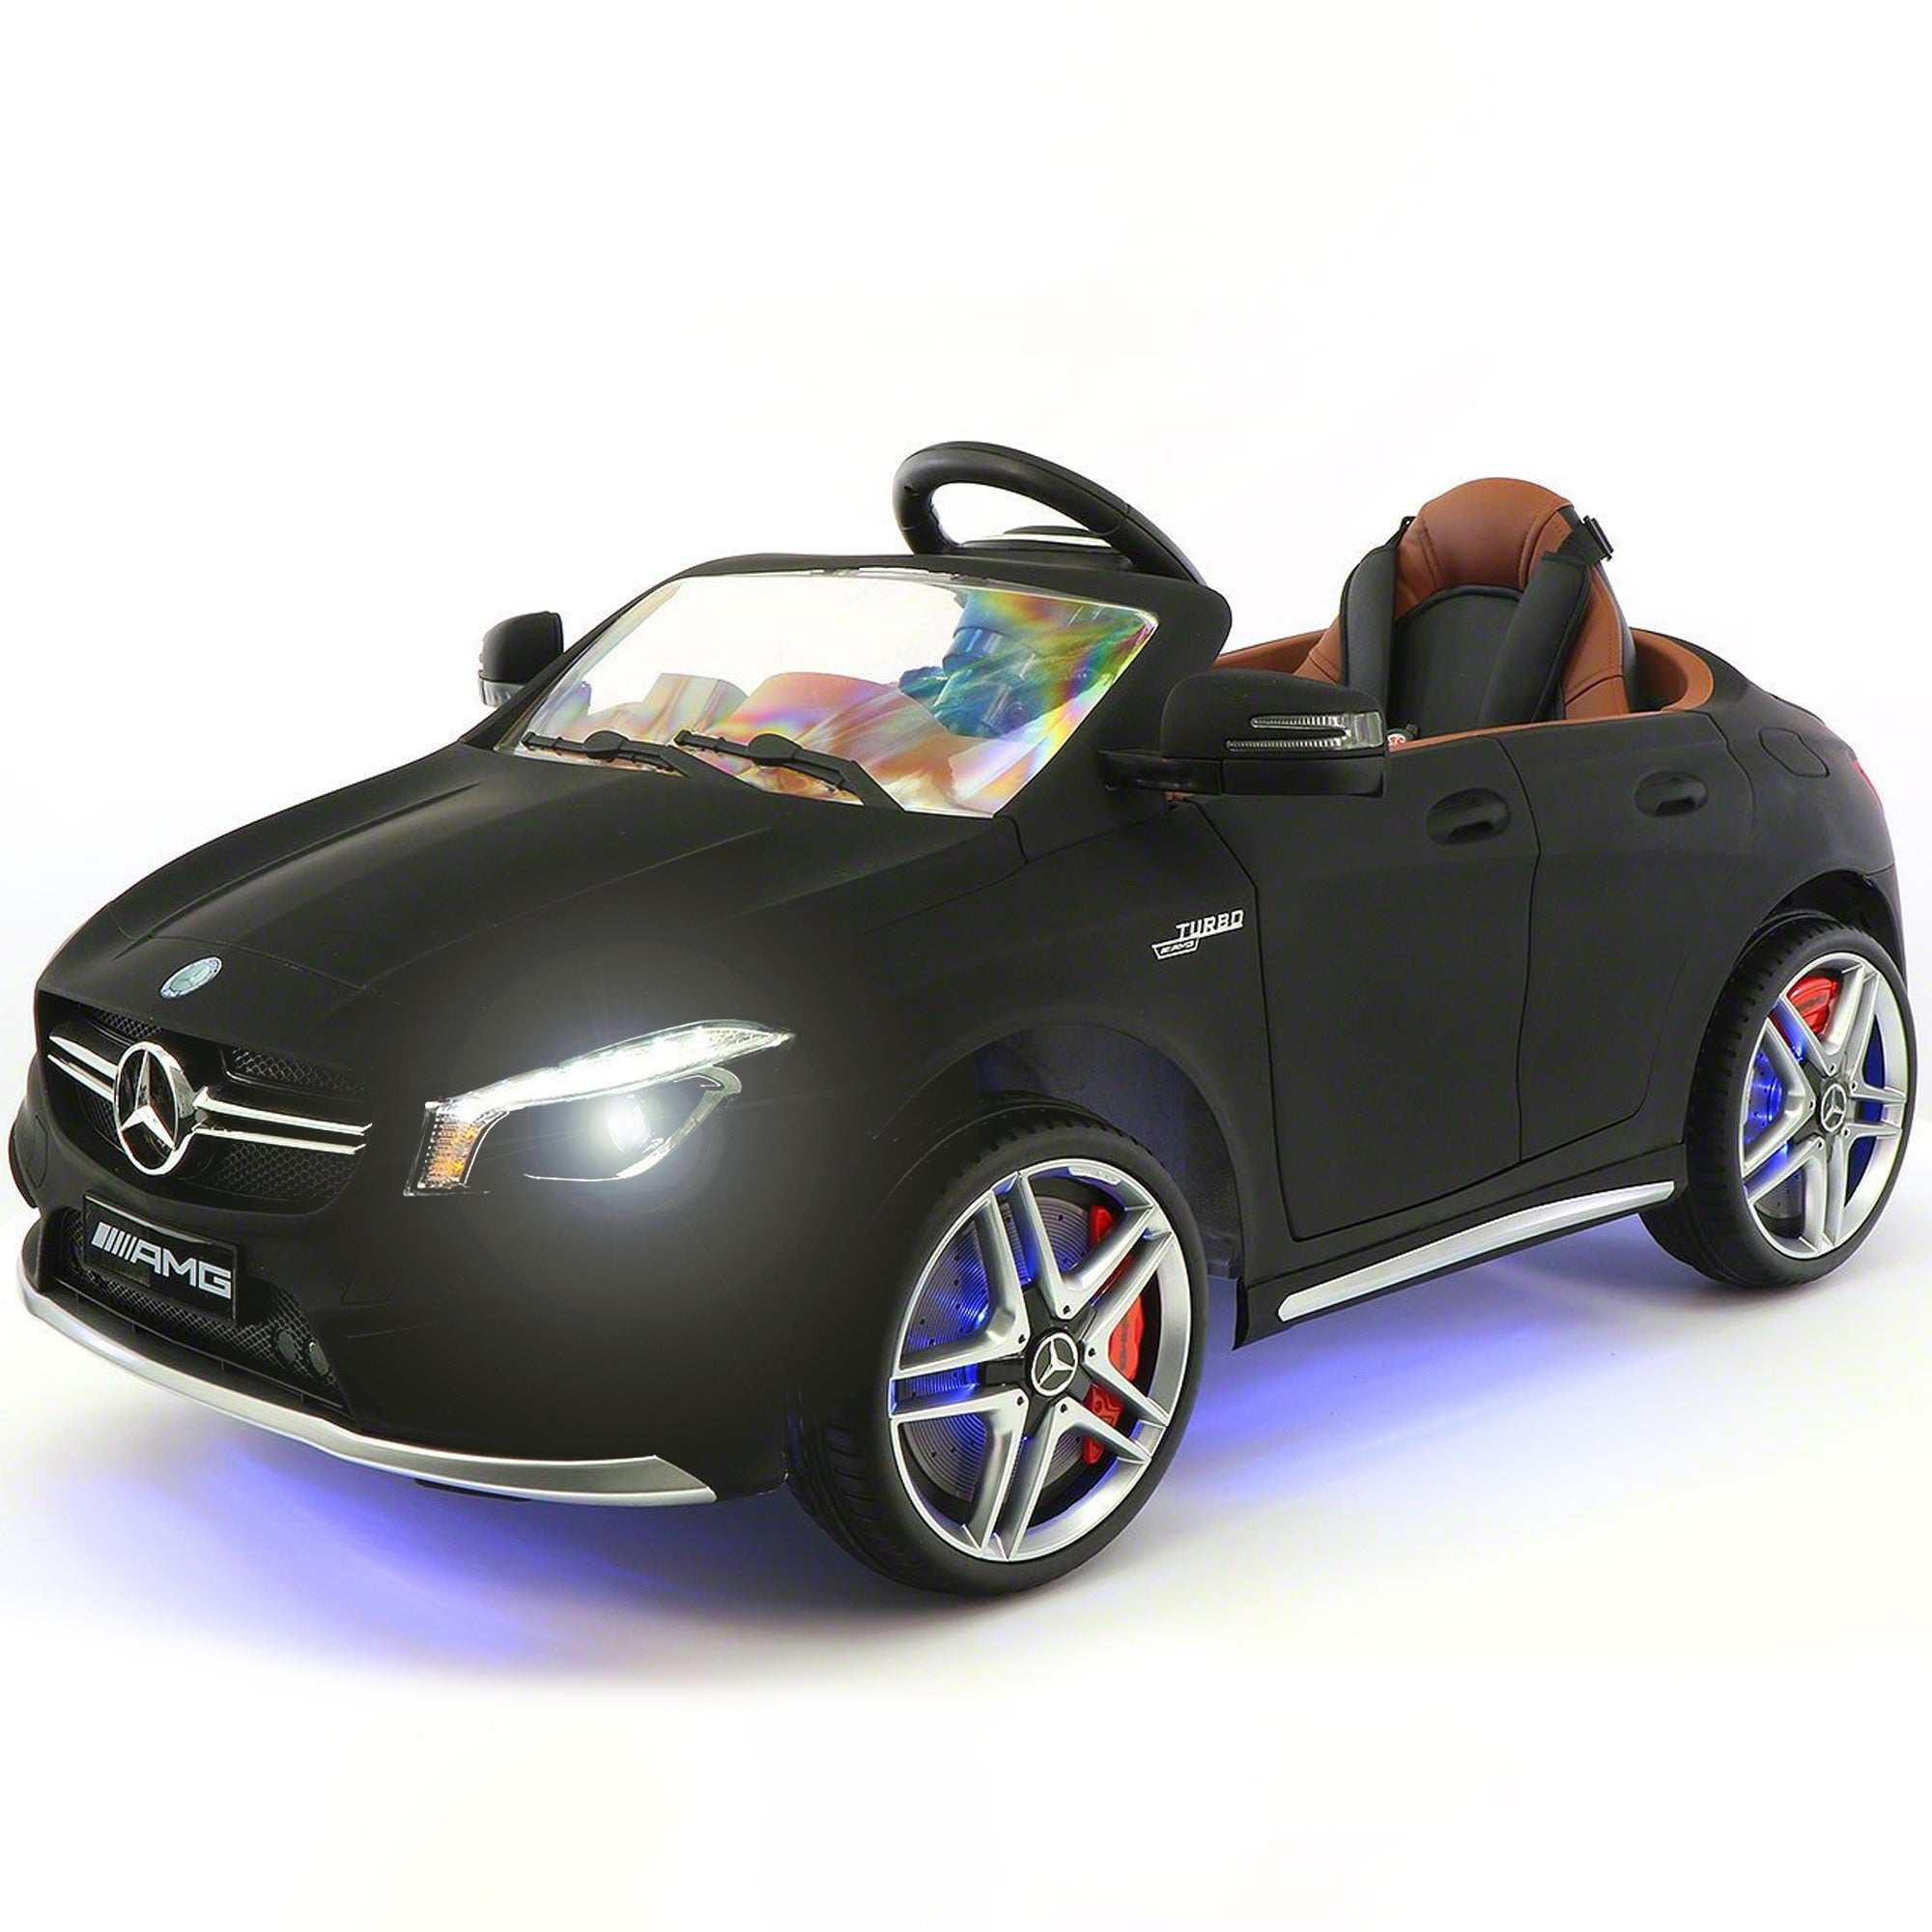 2019 Mercedes Benz CLA 12V Ride On Car for Kids | 12V Engine Power Licensed Kid Car to Drive with Remote, Dining Table, Leather Seat, Openable Doors, LED Lights - Dull Black - Jay Goodys